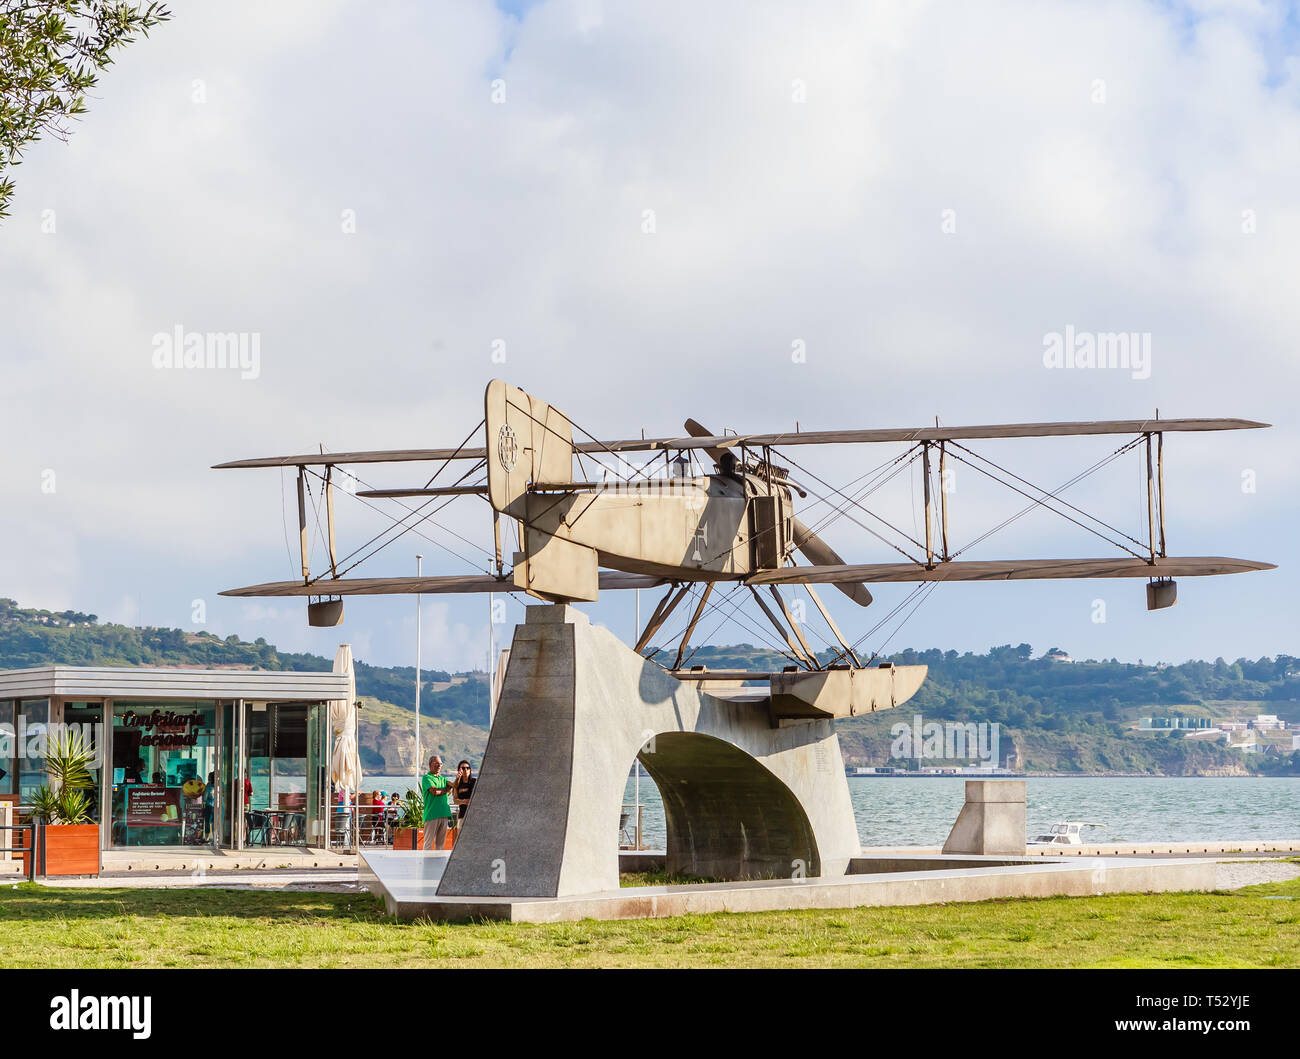 A monument of two fliers, Gago Coutinho and Sacadura Cabral who fllew in their bi plane from Lisbon to Rio de Janeiro in 1922. Belem, the embankment o - Stock Image